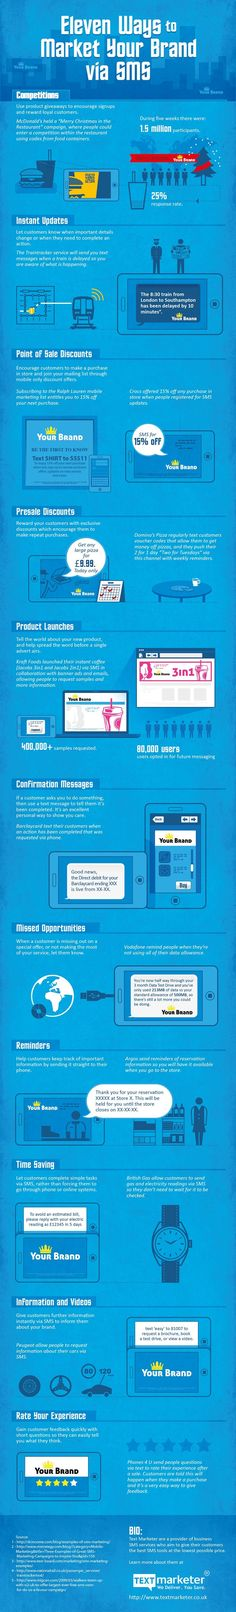 To find out more about how you can use SMS to boost your brand marketing, check out the infographic:    Read more: http://www.marketingprofs.com/chirp/2014/25523/11-ways-to-market-your-brand-via-sms-infographic#ixzz36zj3NHmV